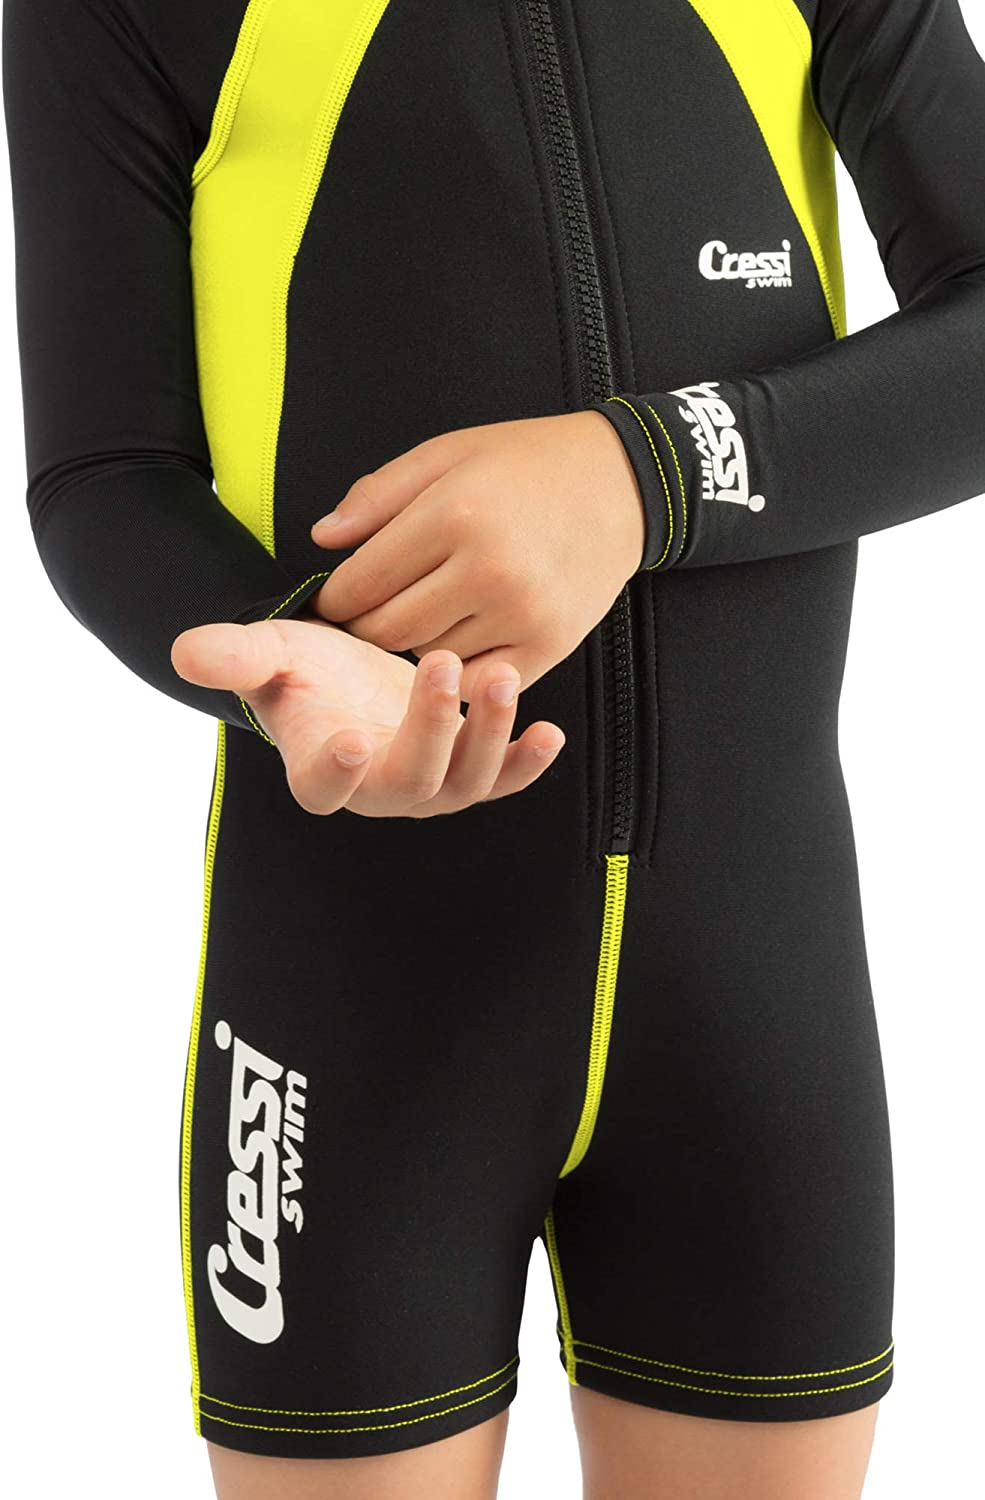 Cressi Unisex Kid Shorty Thermal Wetsuit Neoprene Ultra Stretch 1.5//2mm